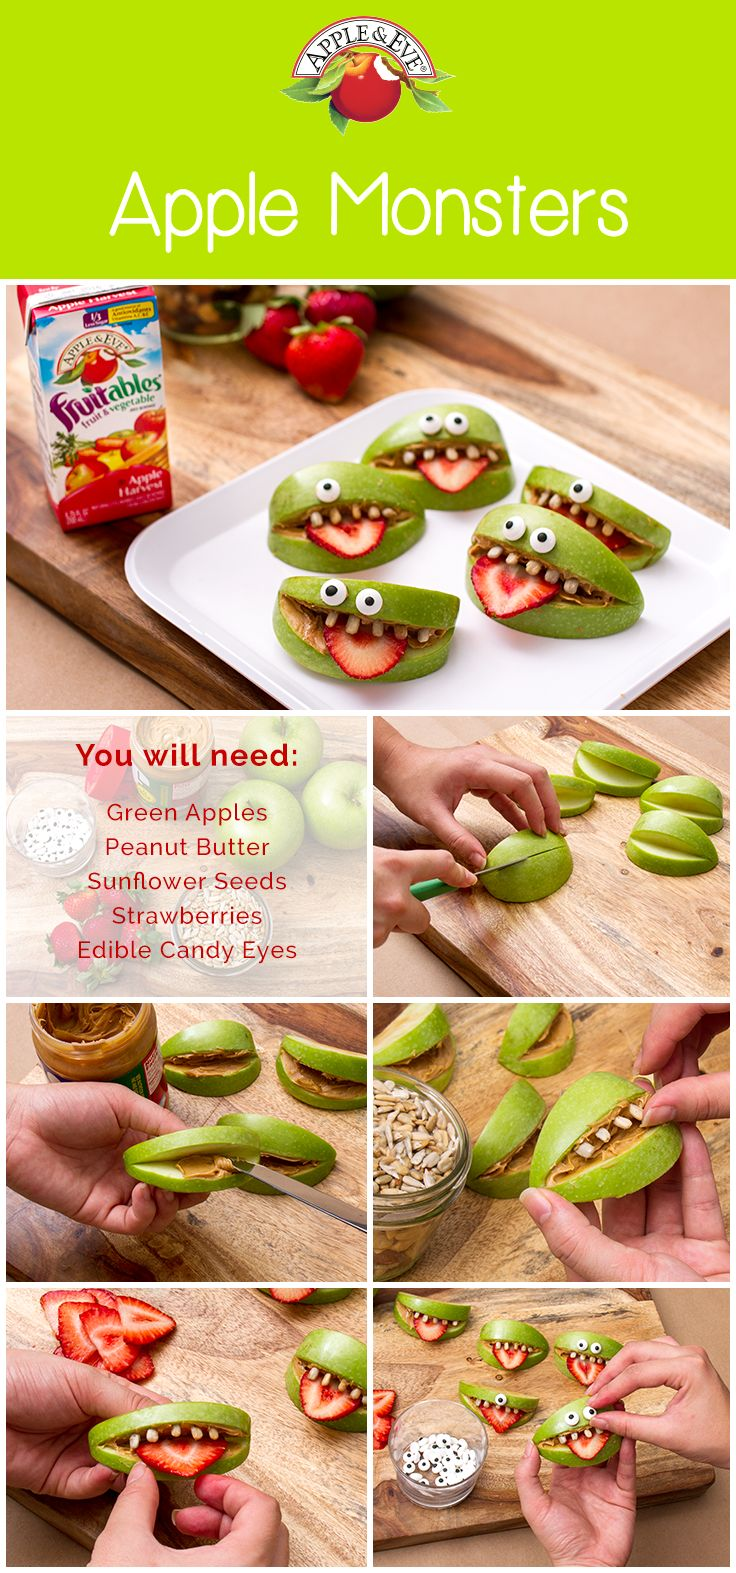 These little monsters are so cute we could eat them up! If they don't get us first... ;)